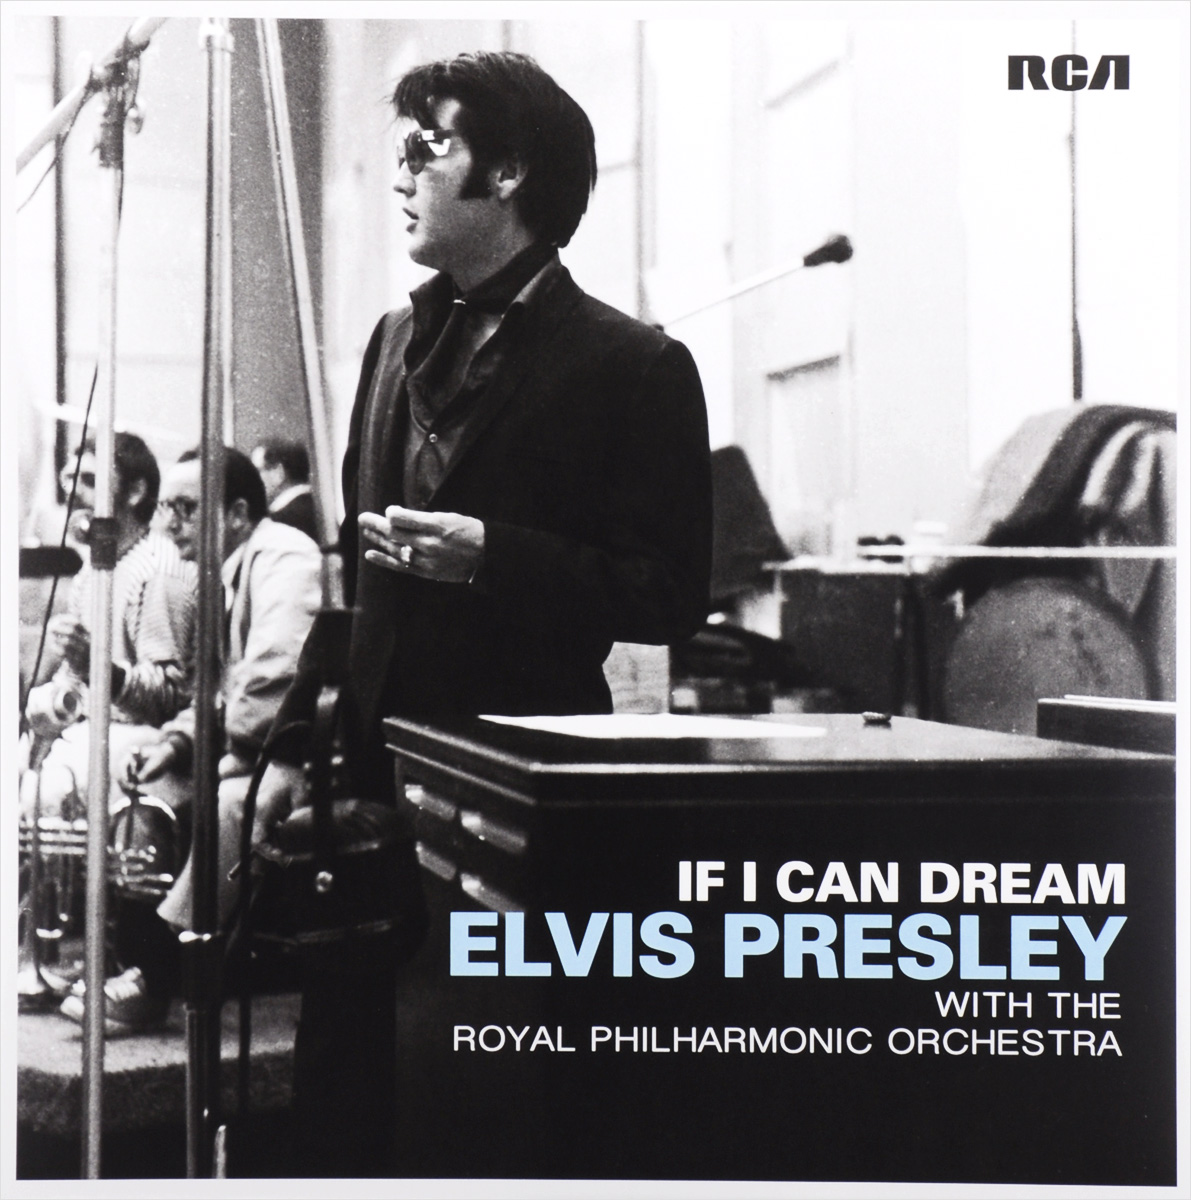 Элвис Пресли,The Royal Philharmonic Orchestra Elvis Presley With The Royal Philharmonic Orchestra. If I Can Dream (2 LP) elvis presley elvis presley the essential elvis presley 2 lp